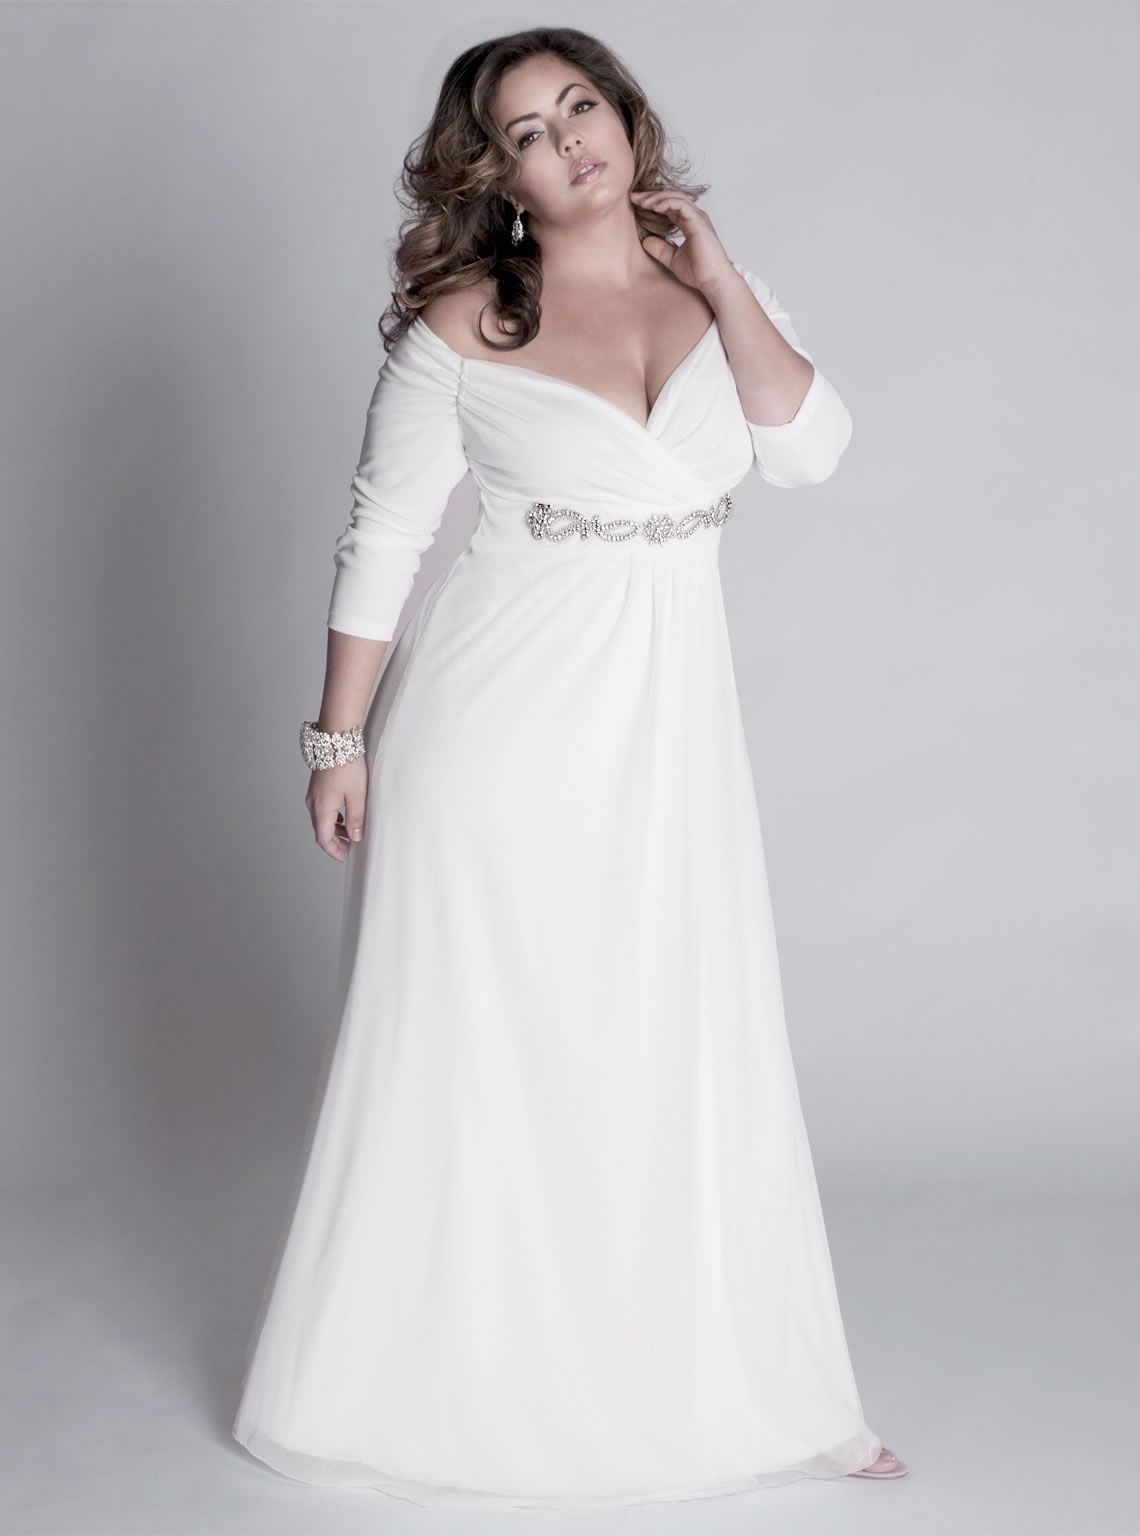 Lace Ball Gown Wedding Dresses For Plus Size Plus size formal dressesPlus Size Wedding Dresses Ball Gown   Casual wedding  Lace ball  . Plus Size Maternity Wedding Dresses. Home Design Ideas